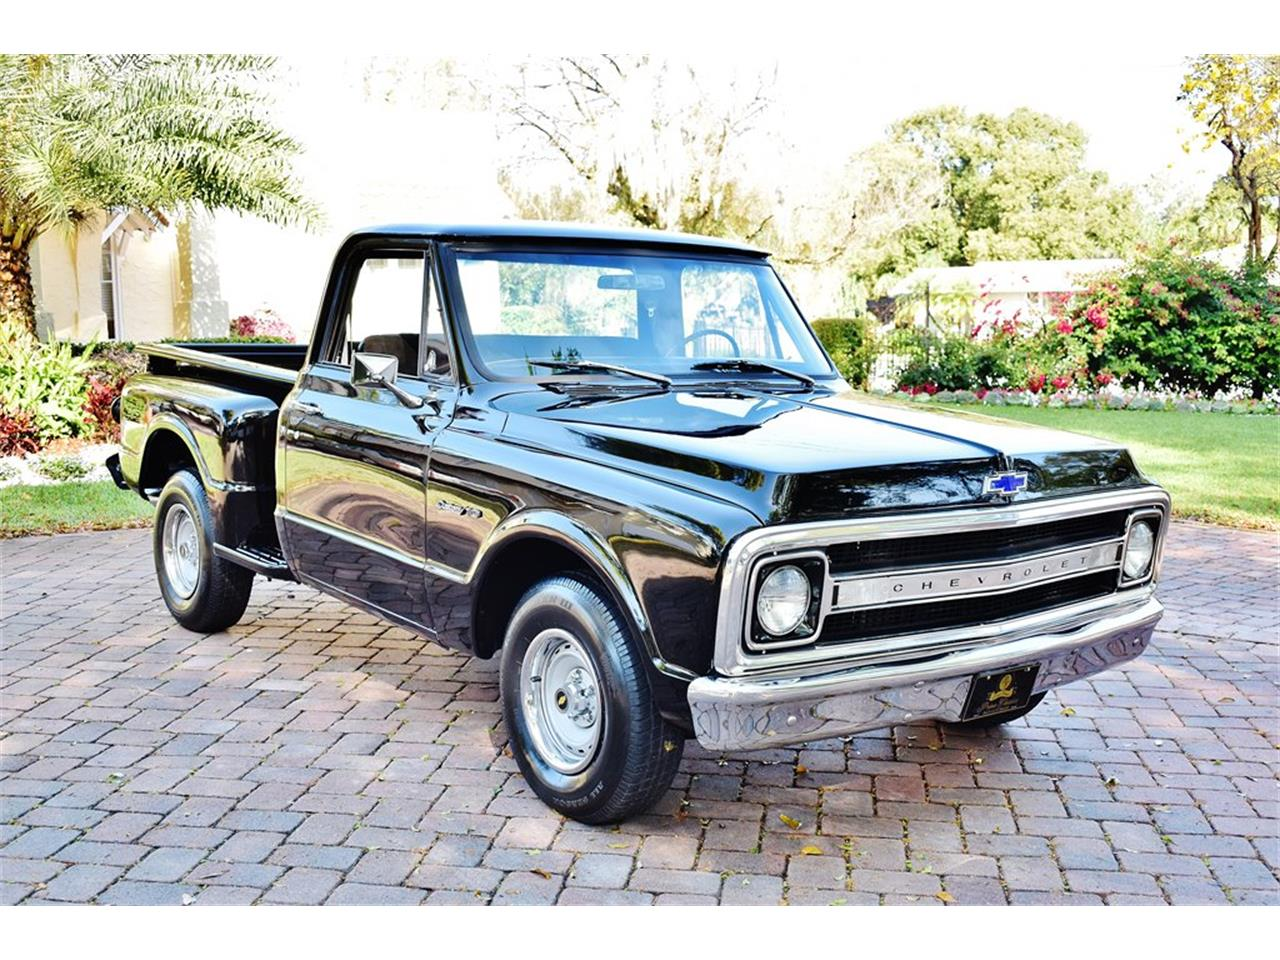 Large Picture of Classic '69 Chevrolet Stepside located in Florida - $24,900.00 - PKMT